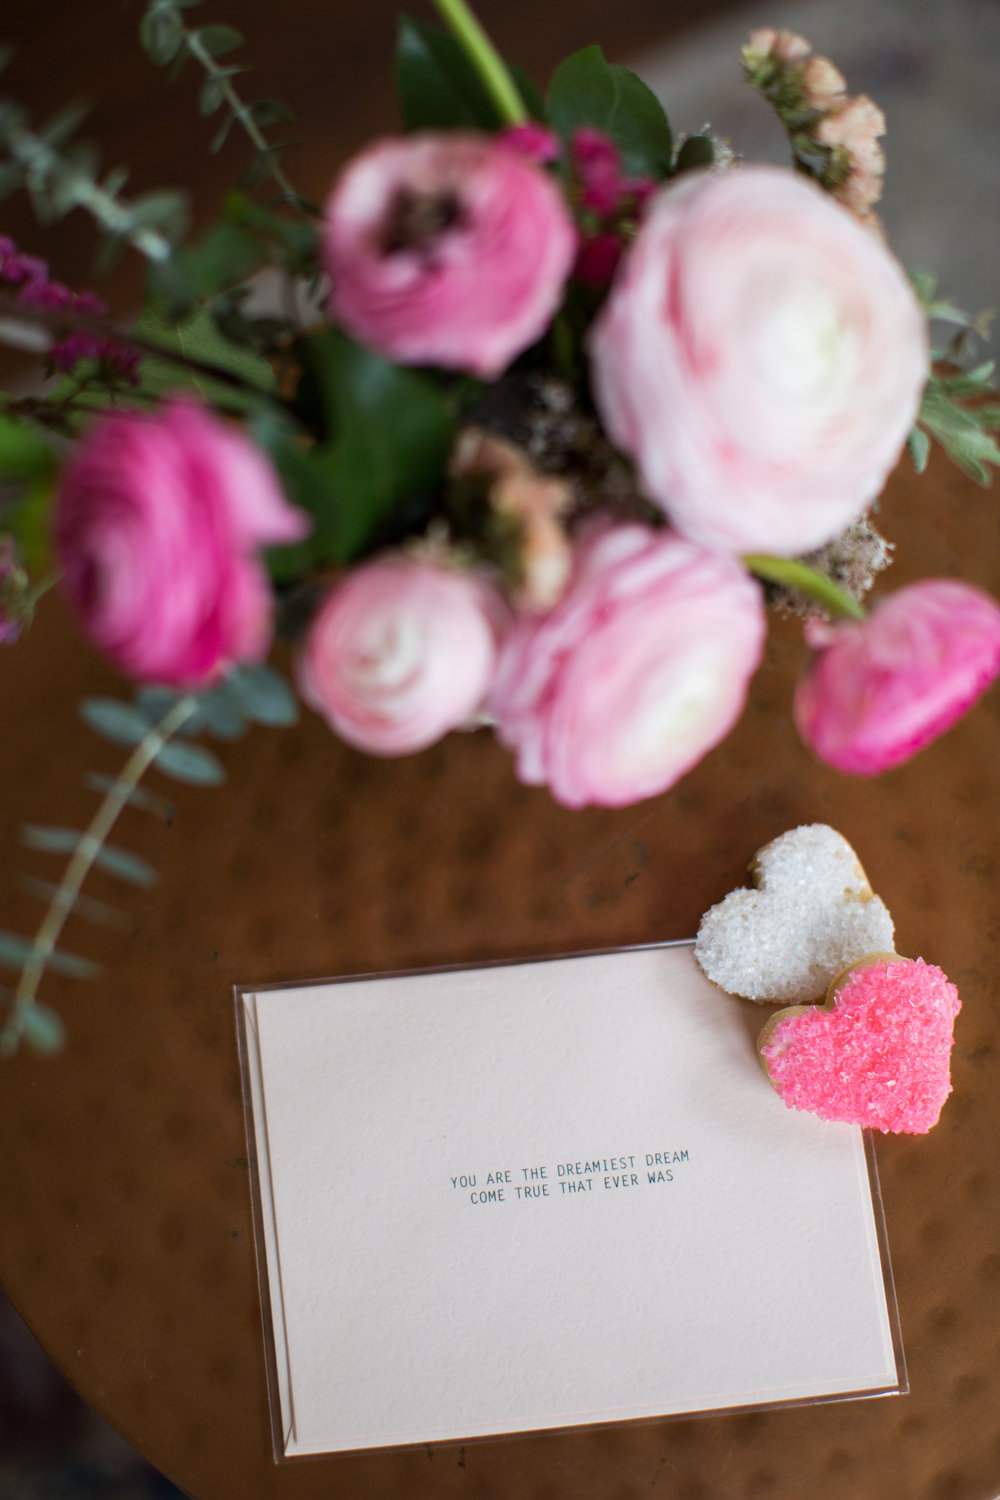 Romantic wedding day cards by Rust & Ivory available in the birdhouse